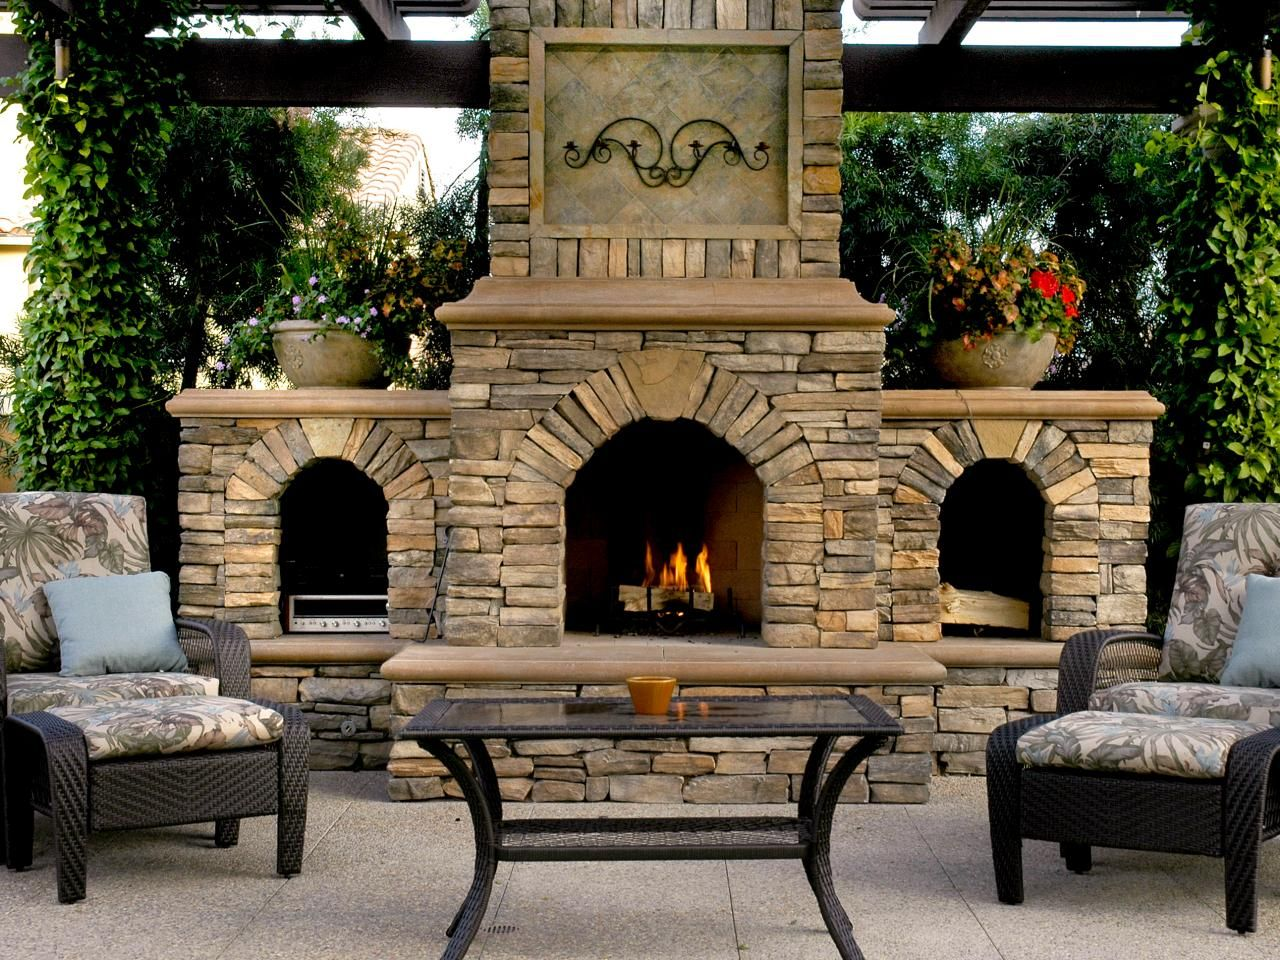 This large outdoor fireplace with its beautiful stone facade has a